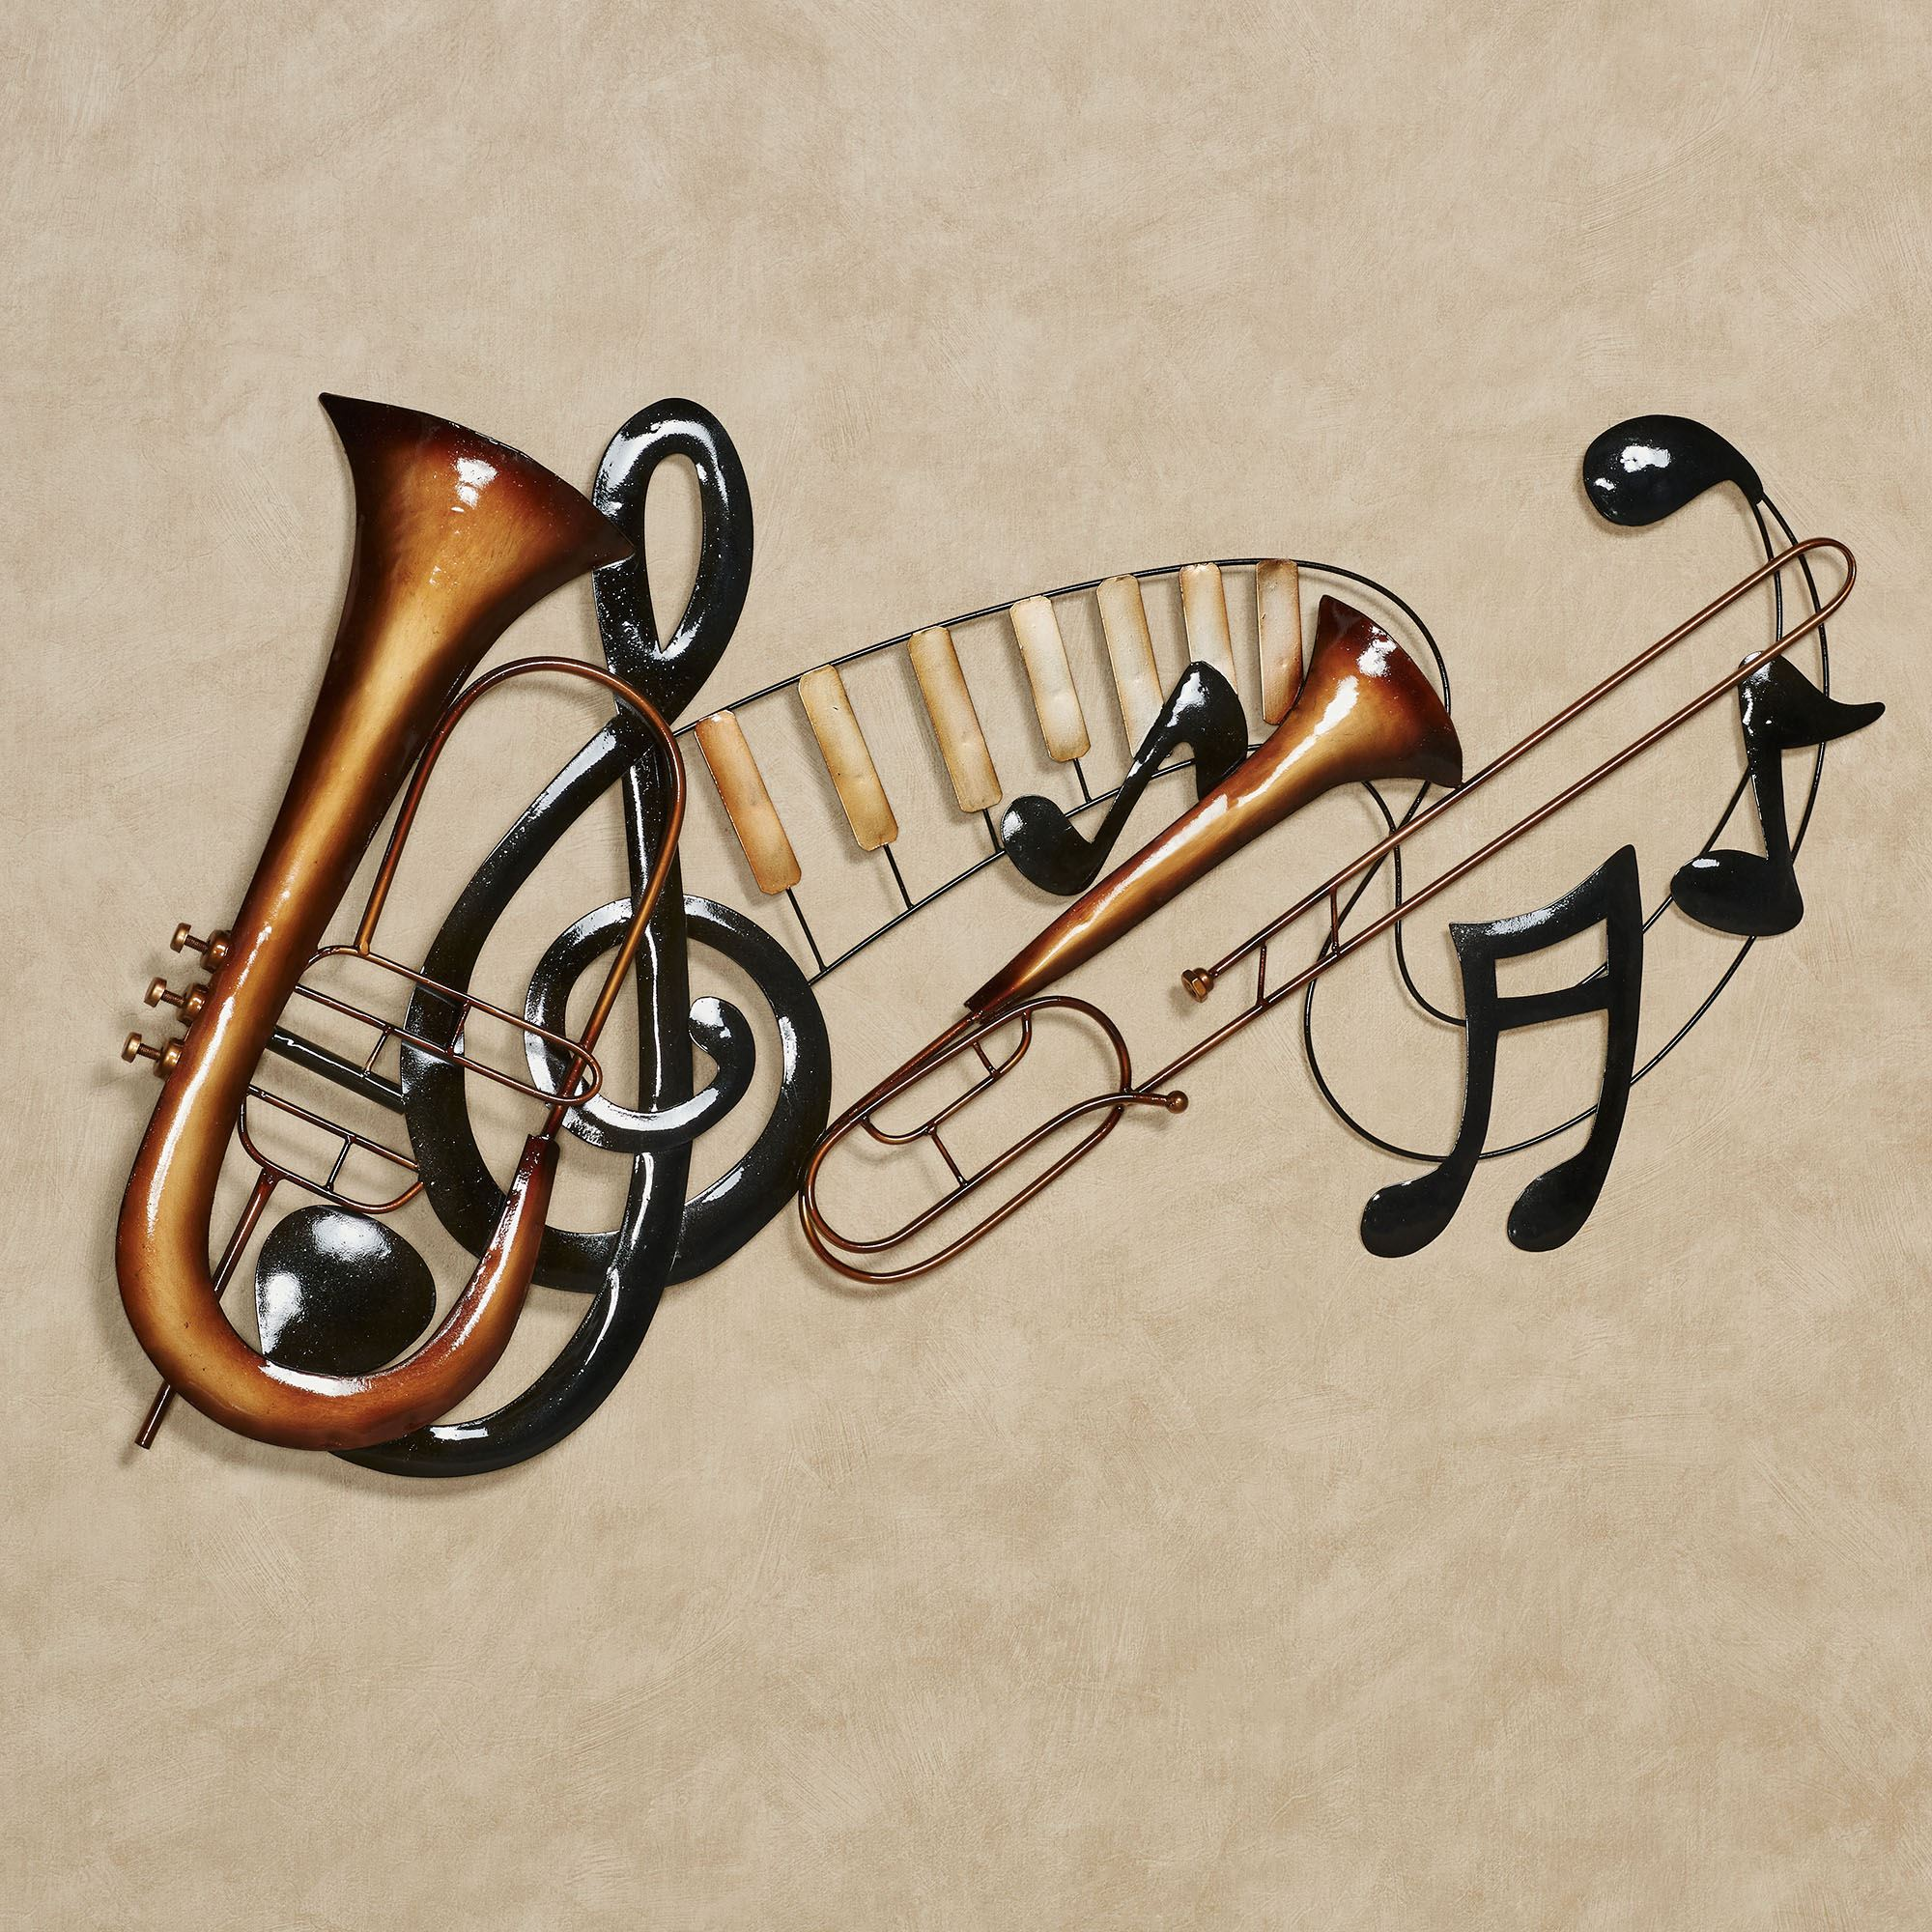 Metal Music Wall Art Musical Interlude Metal Wall Art